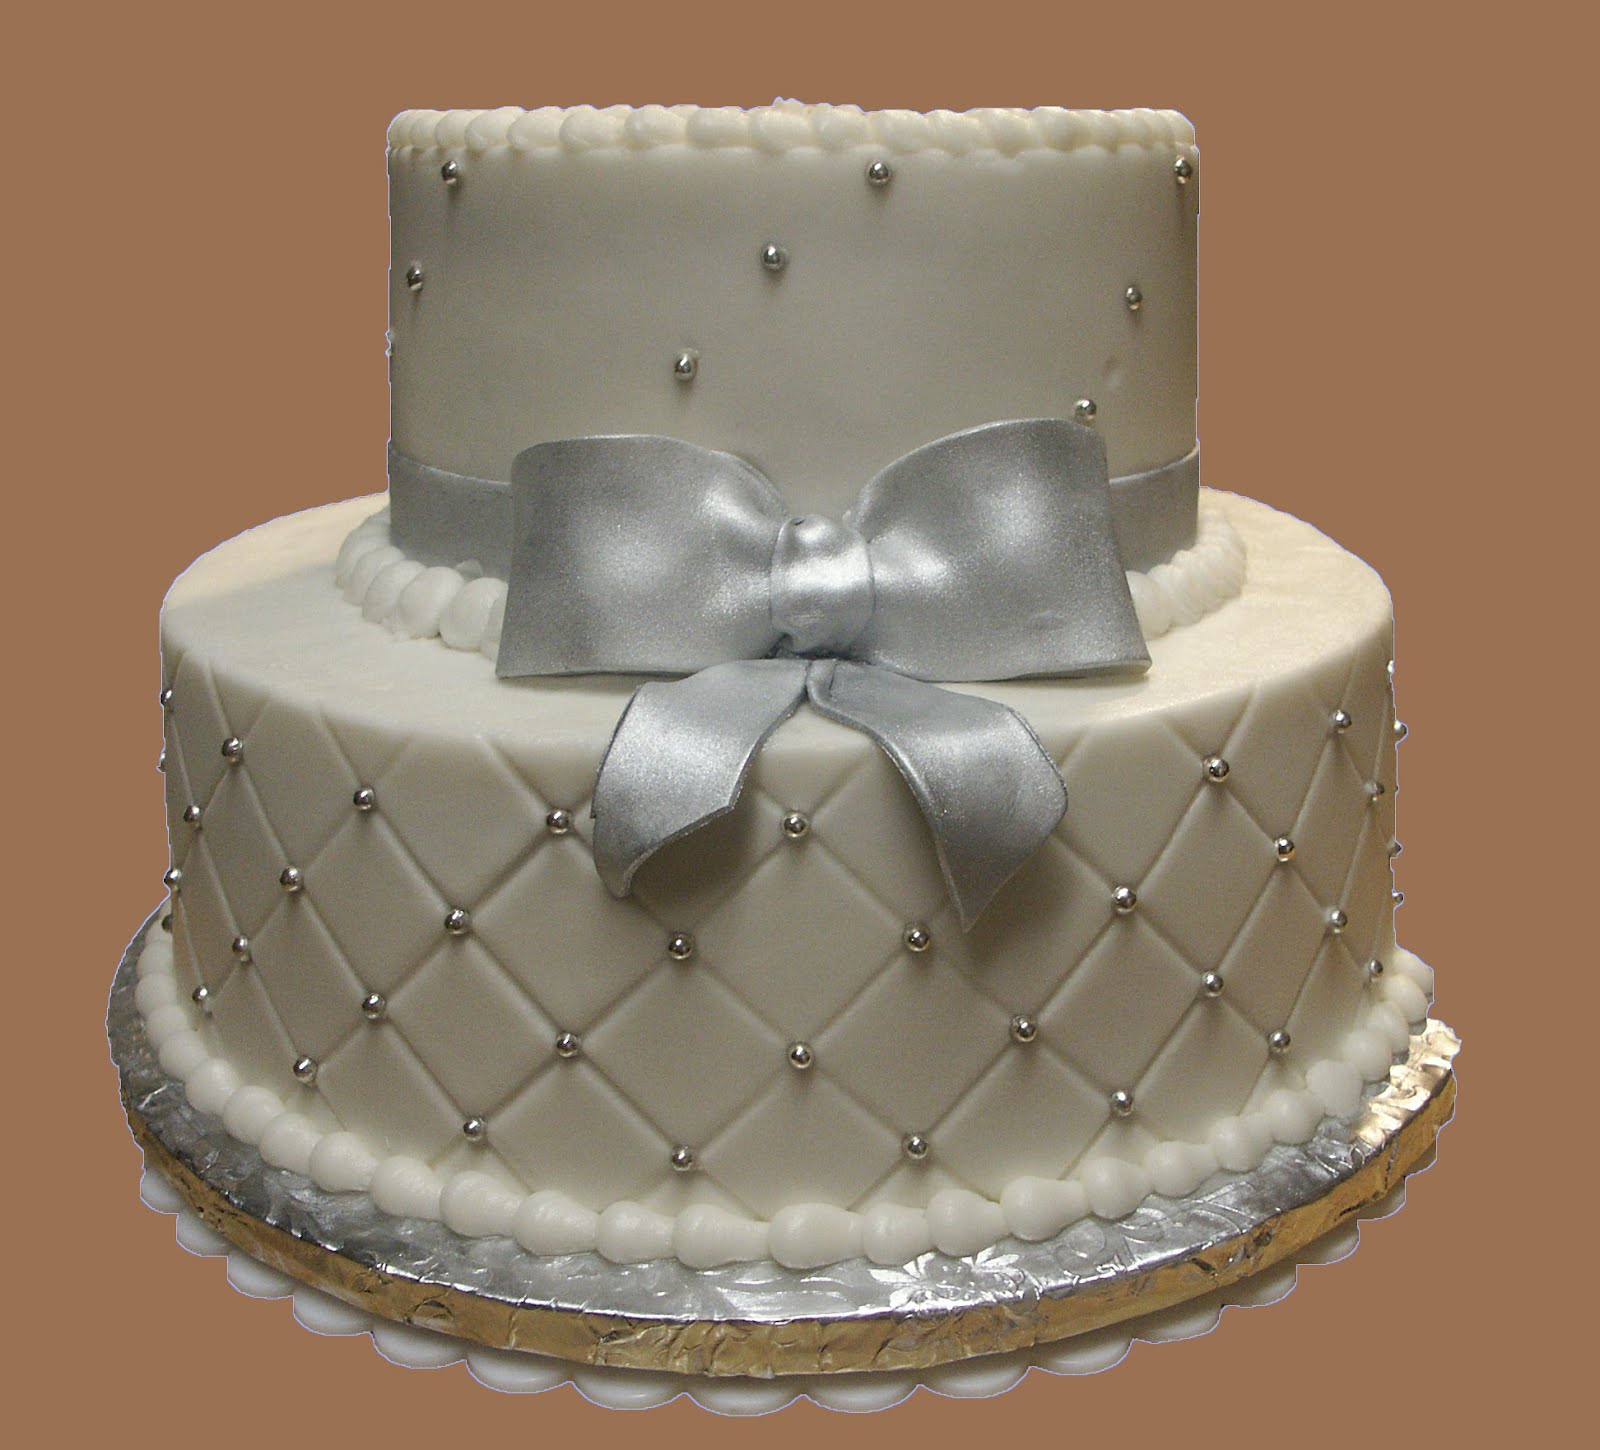 25th Wedding Anniversary Cakes: Cakes And Cakes: 25TH Wedding Anniversary *Buttercream And